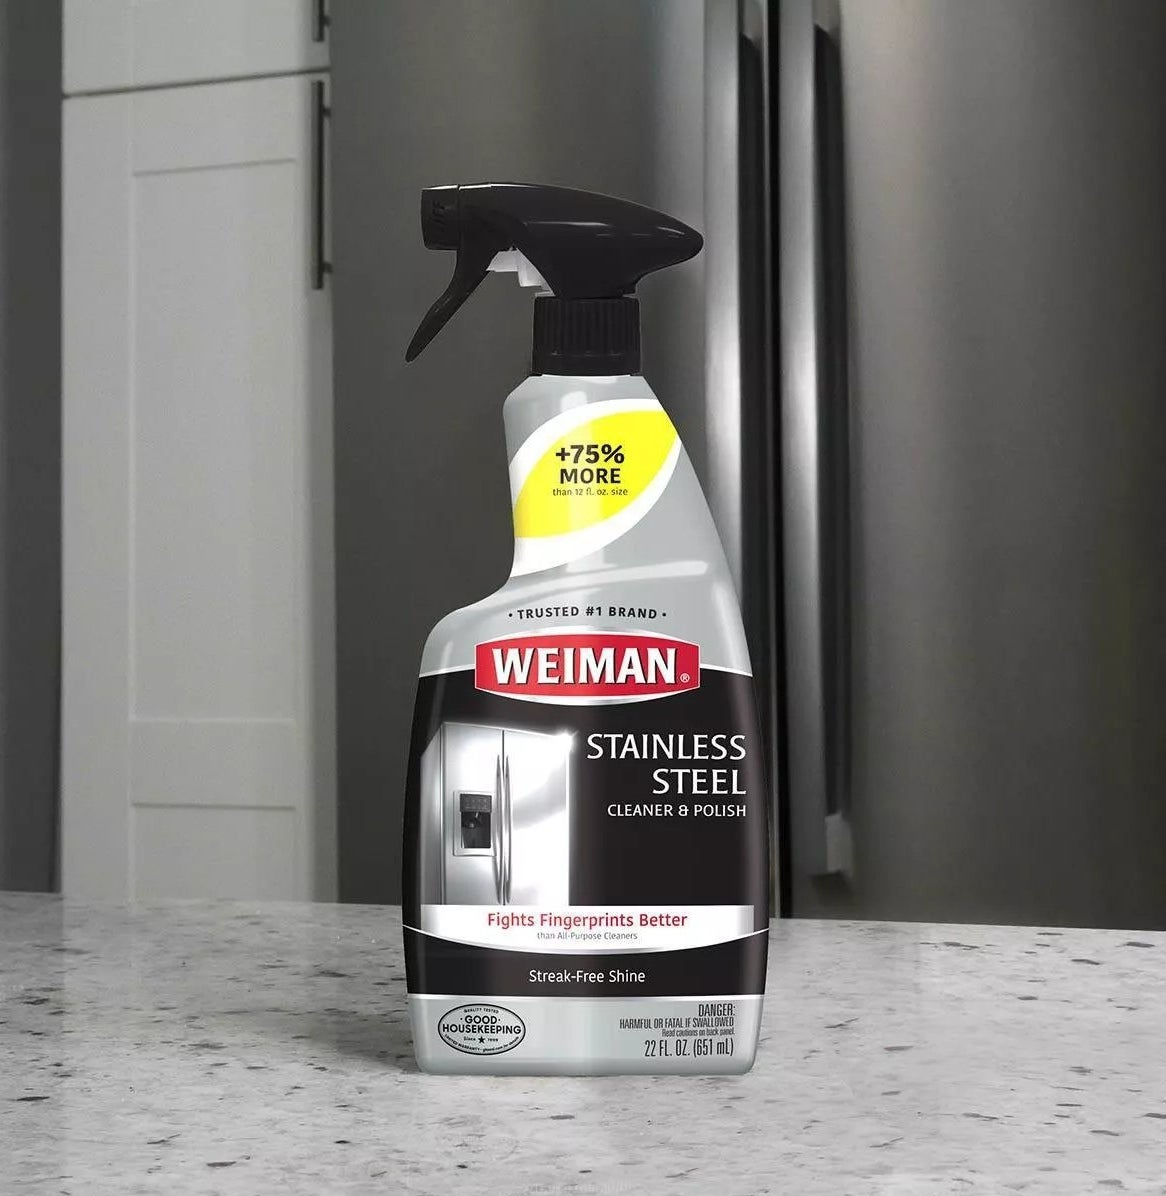 Weiman's Stainless Steel Cleaner and Polish fights fingerprints better than all-purpose cleaners and leaves a streak-free shine